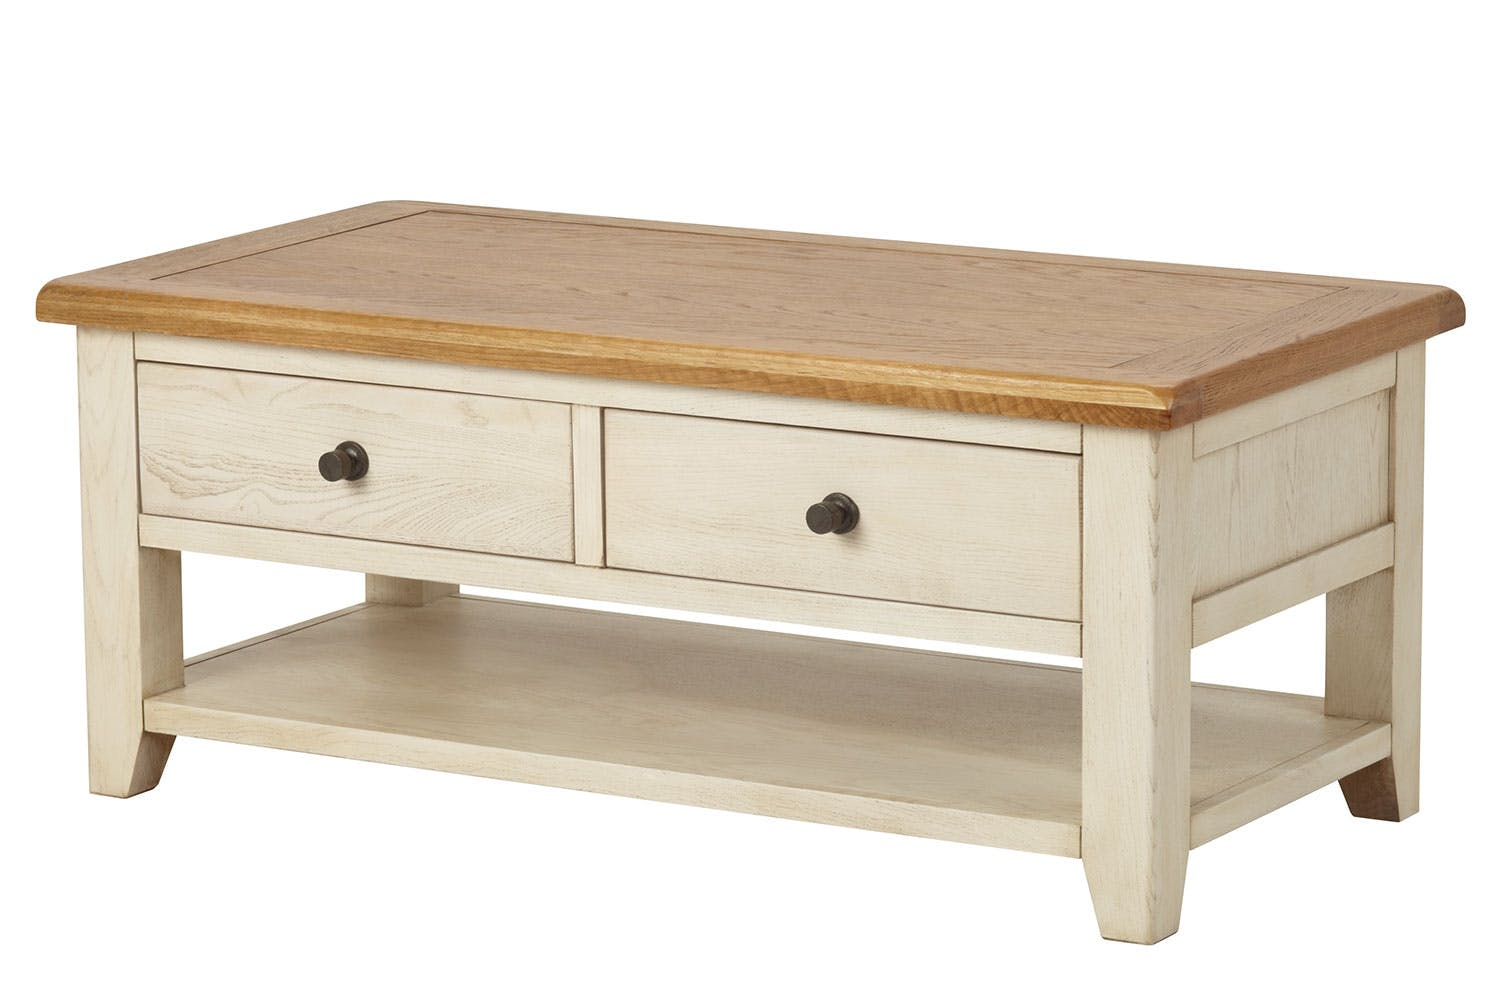 Mansfield Coffee Table By Debonaire Furniture Harvey Norman New Zealand